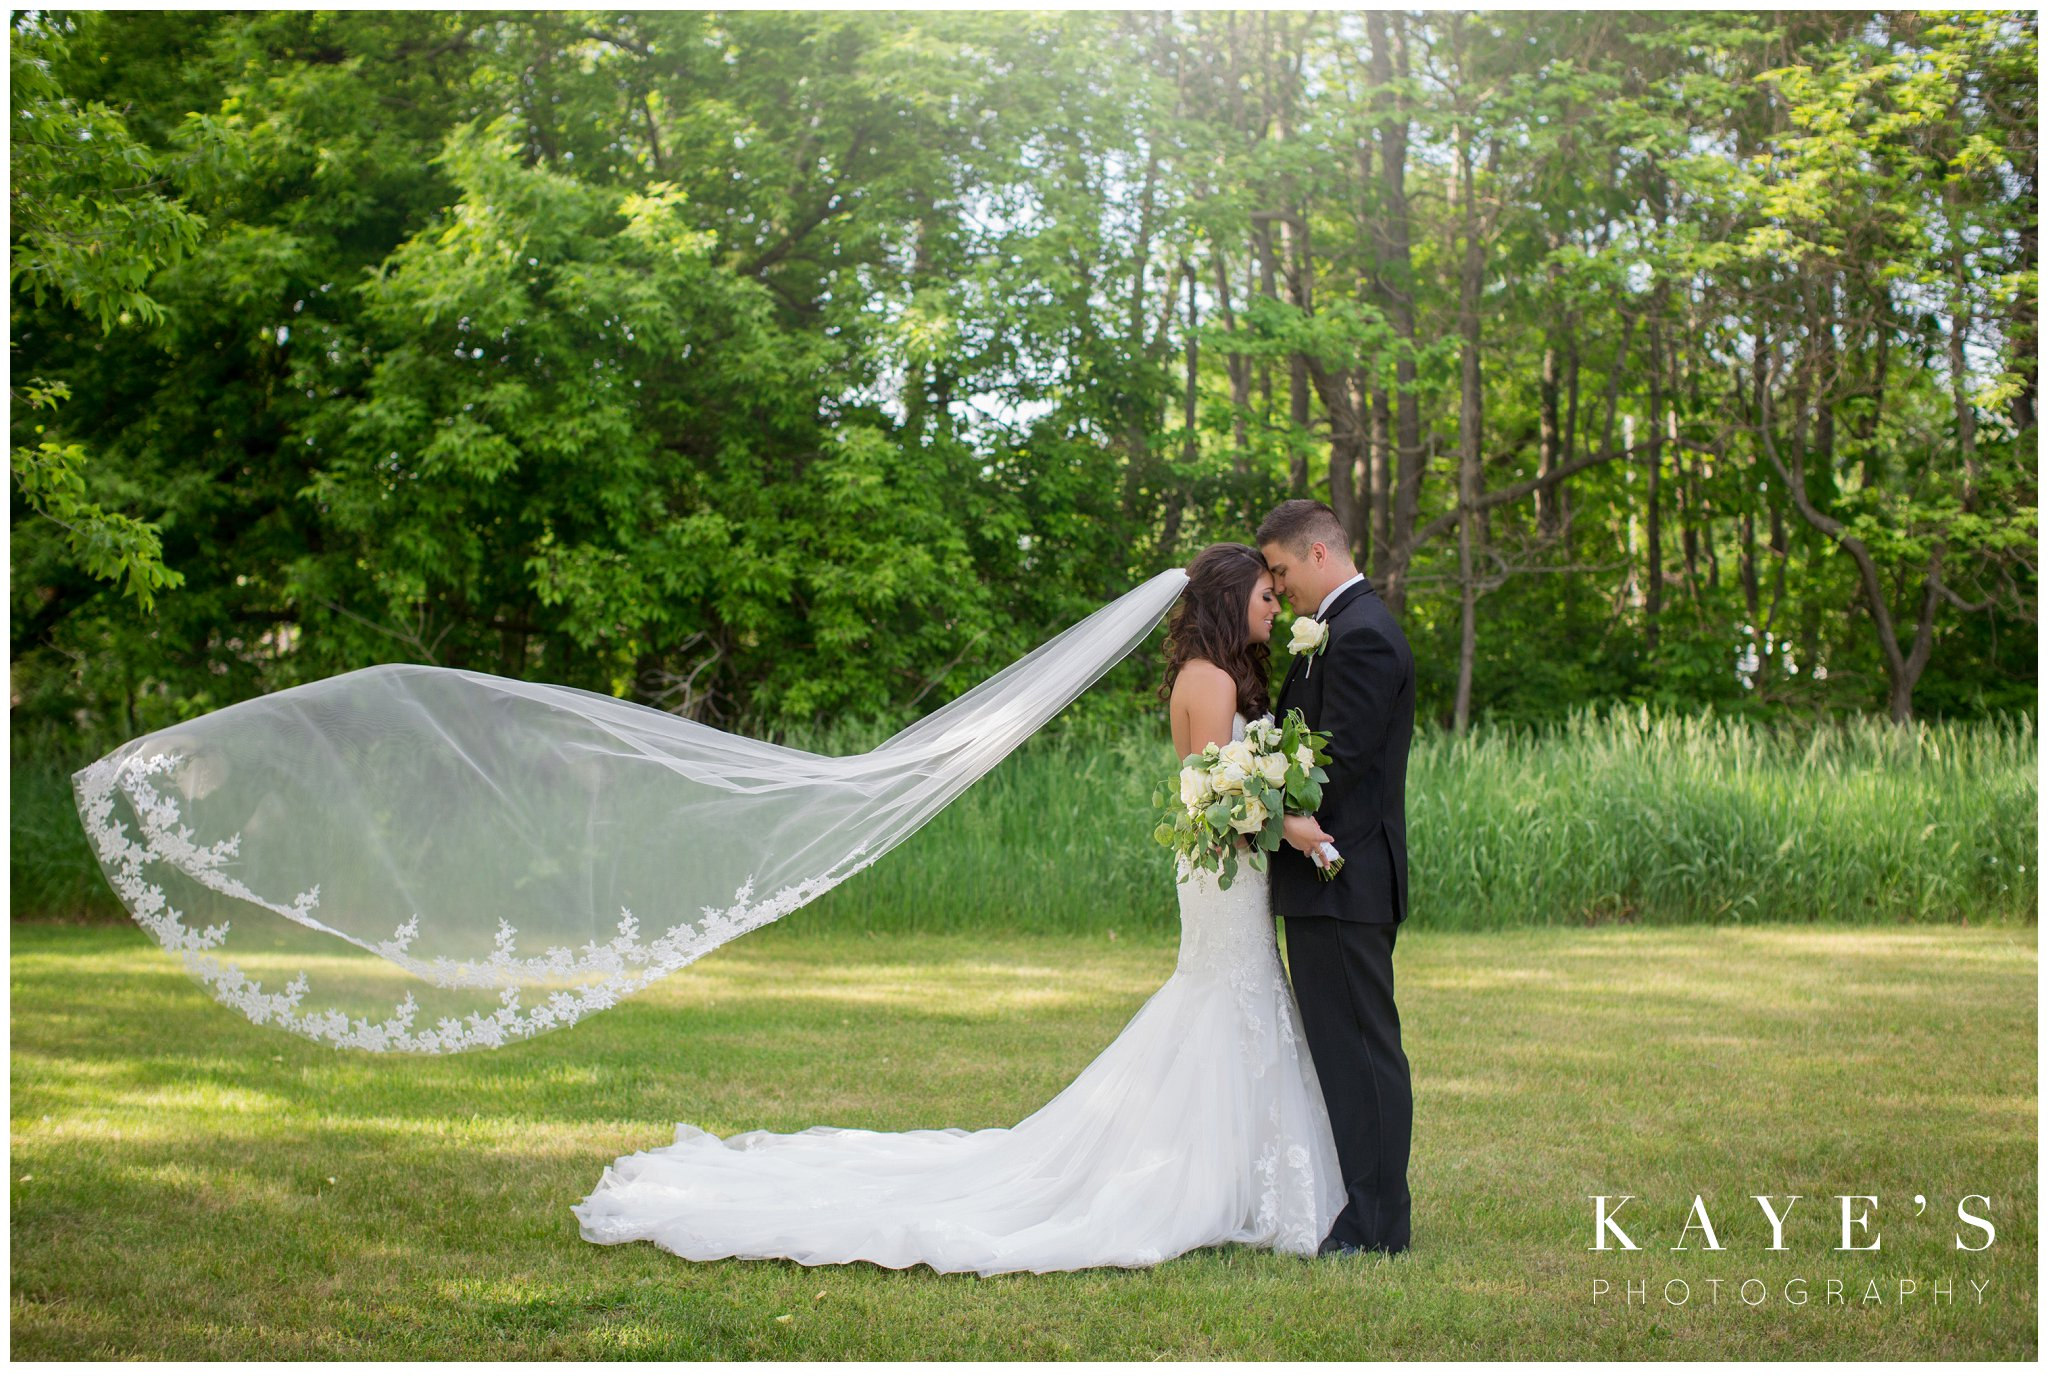 Kayes Photography- howell-michigan-wedding-photographer_0701.jpg